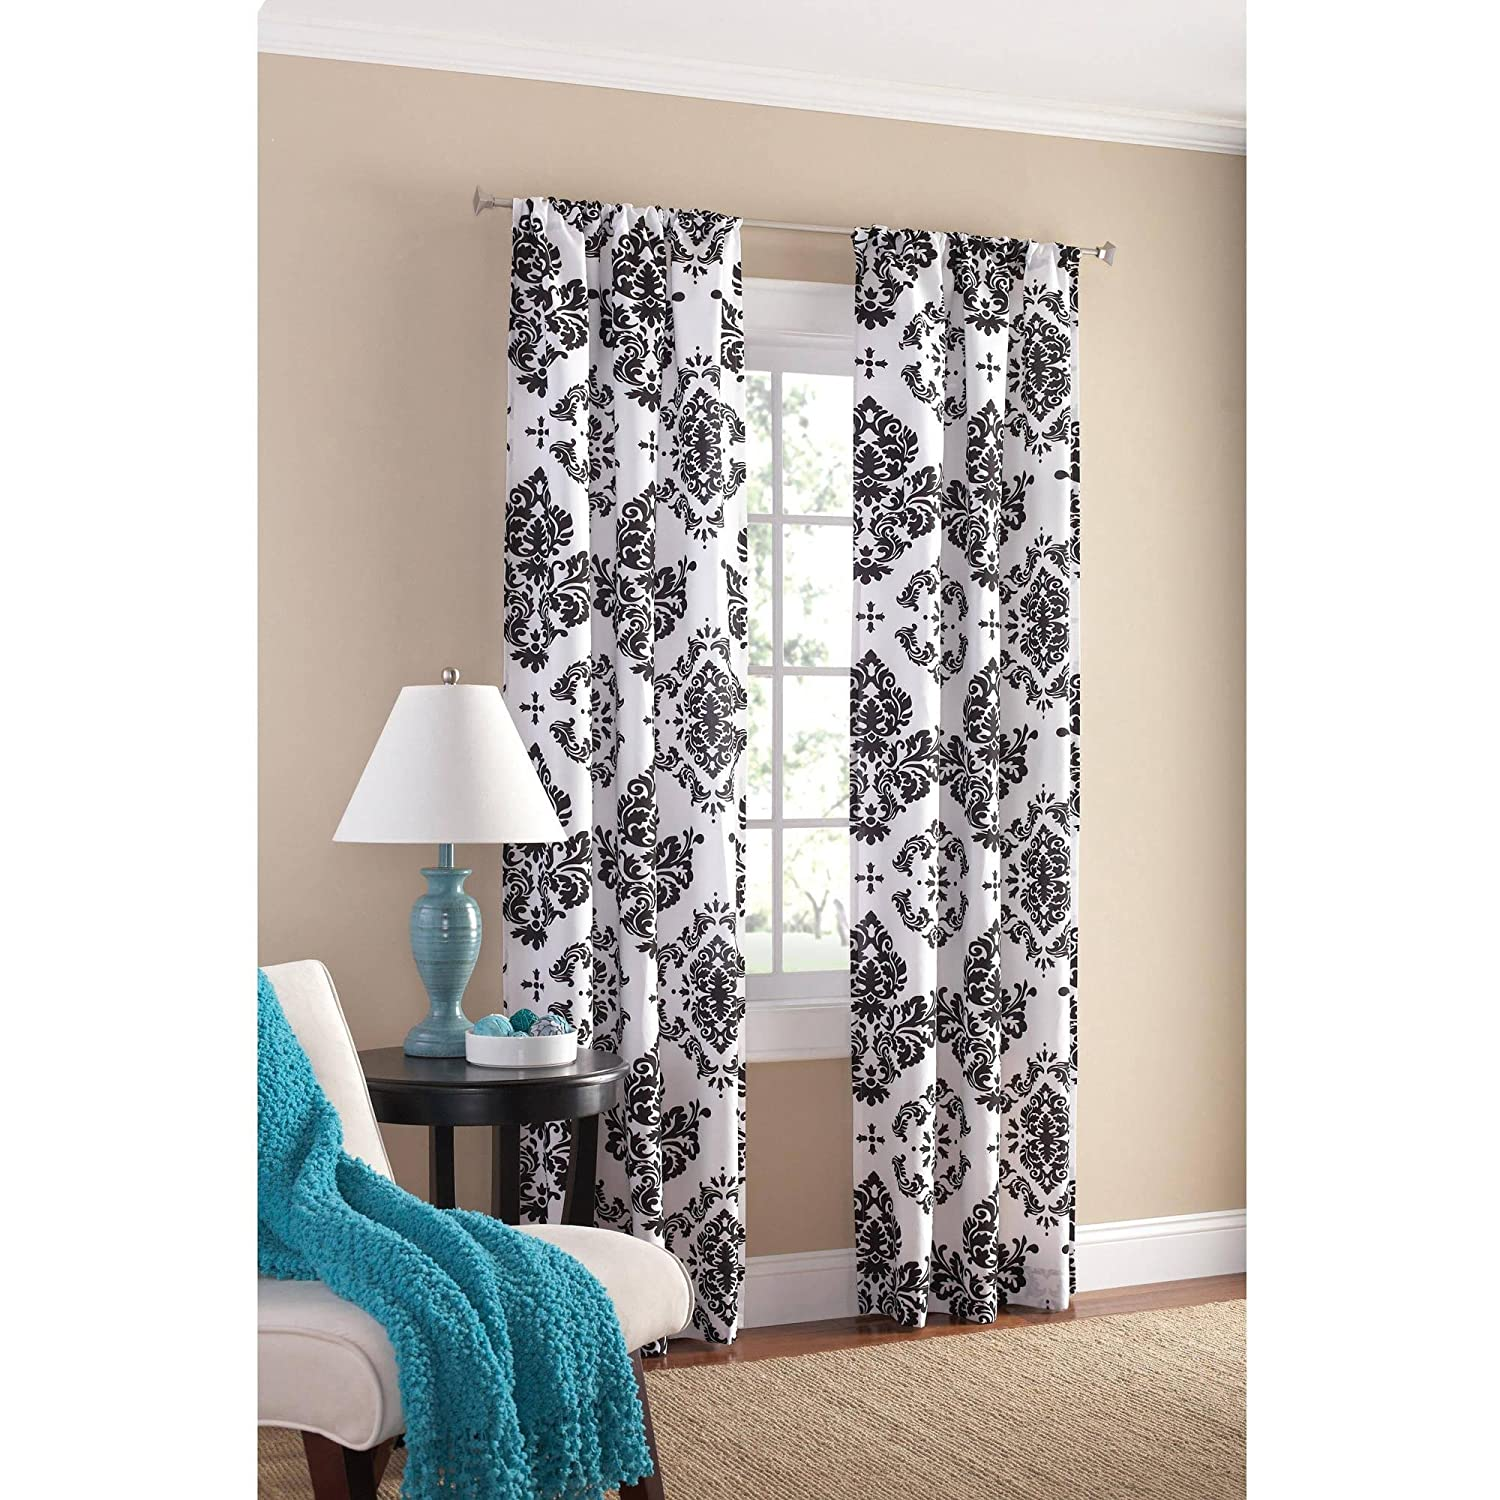 amazoncom black and white damask curtain panel set of 2 40x84inch home u0026 kitchen